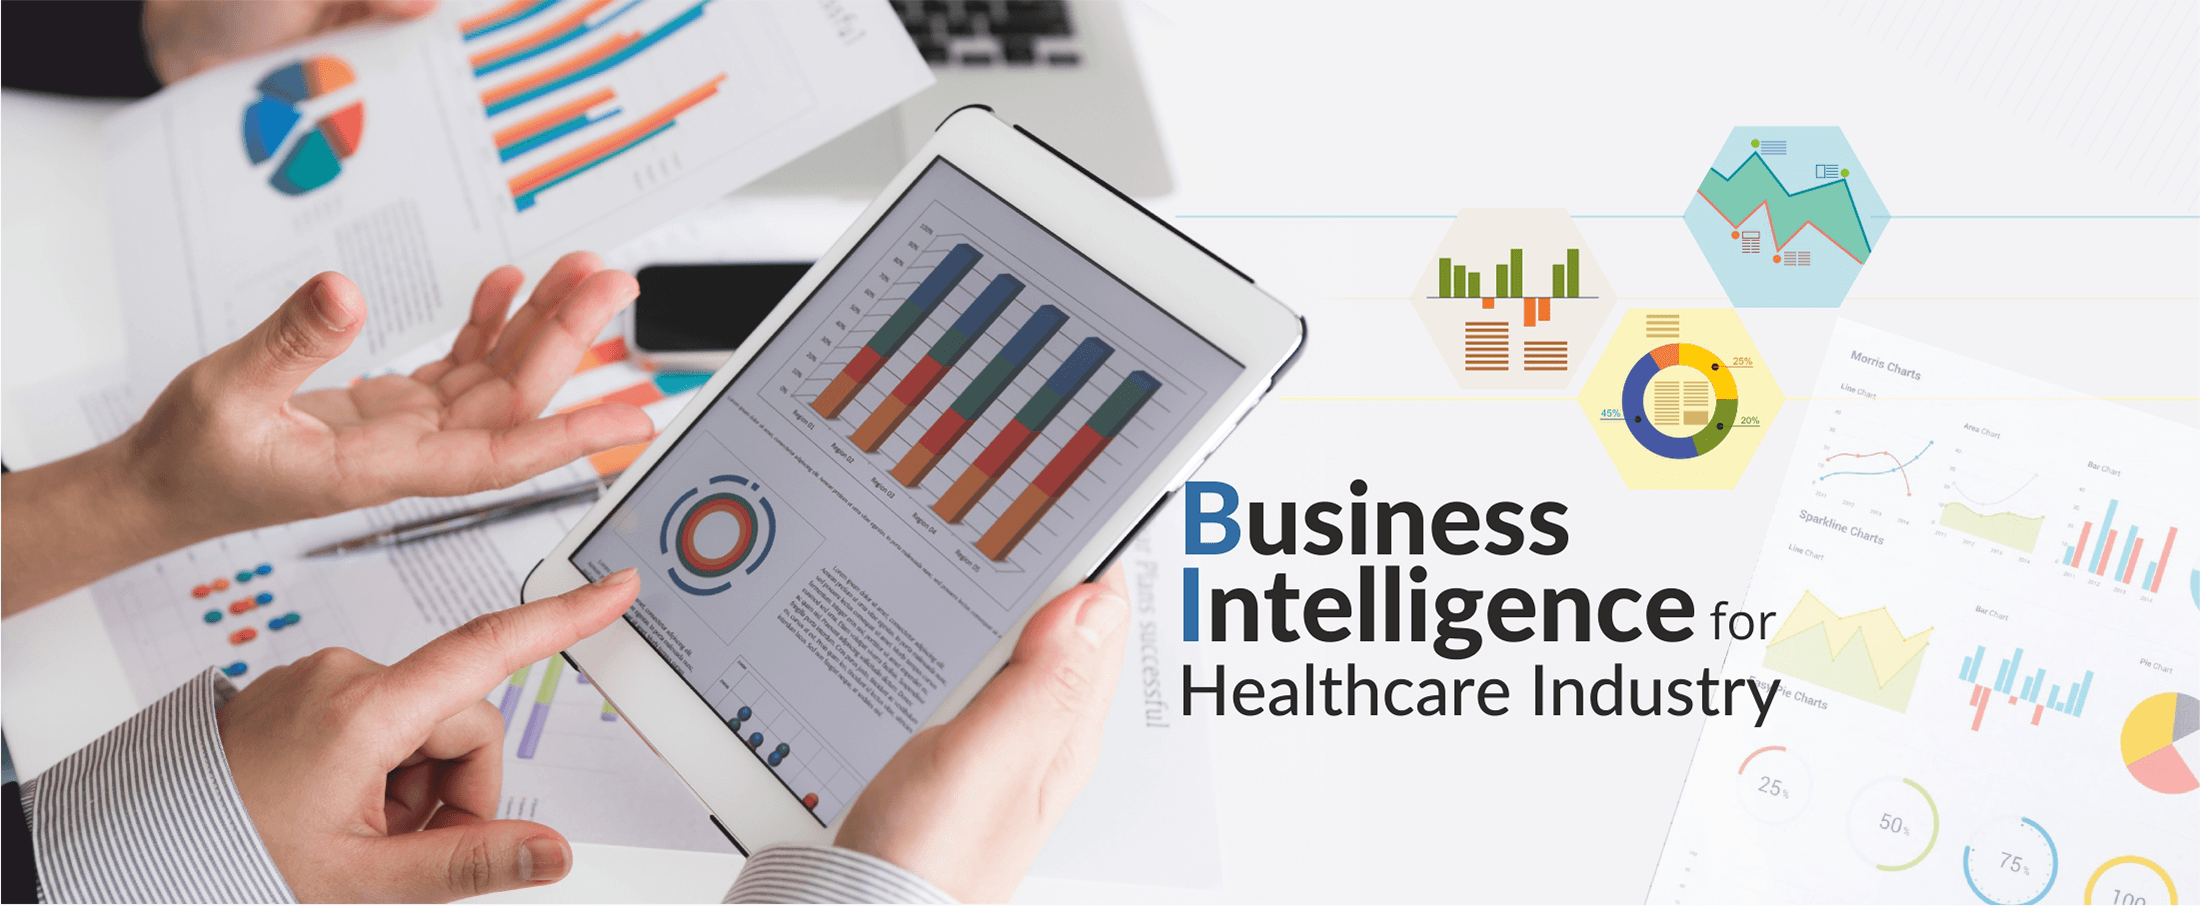 Business Intelligence for Healthcare Industry